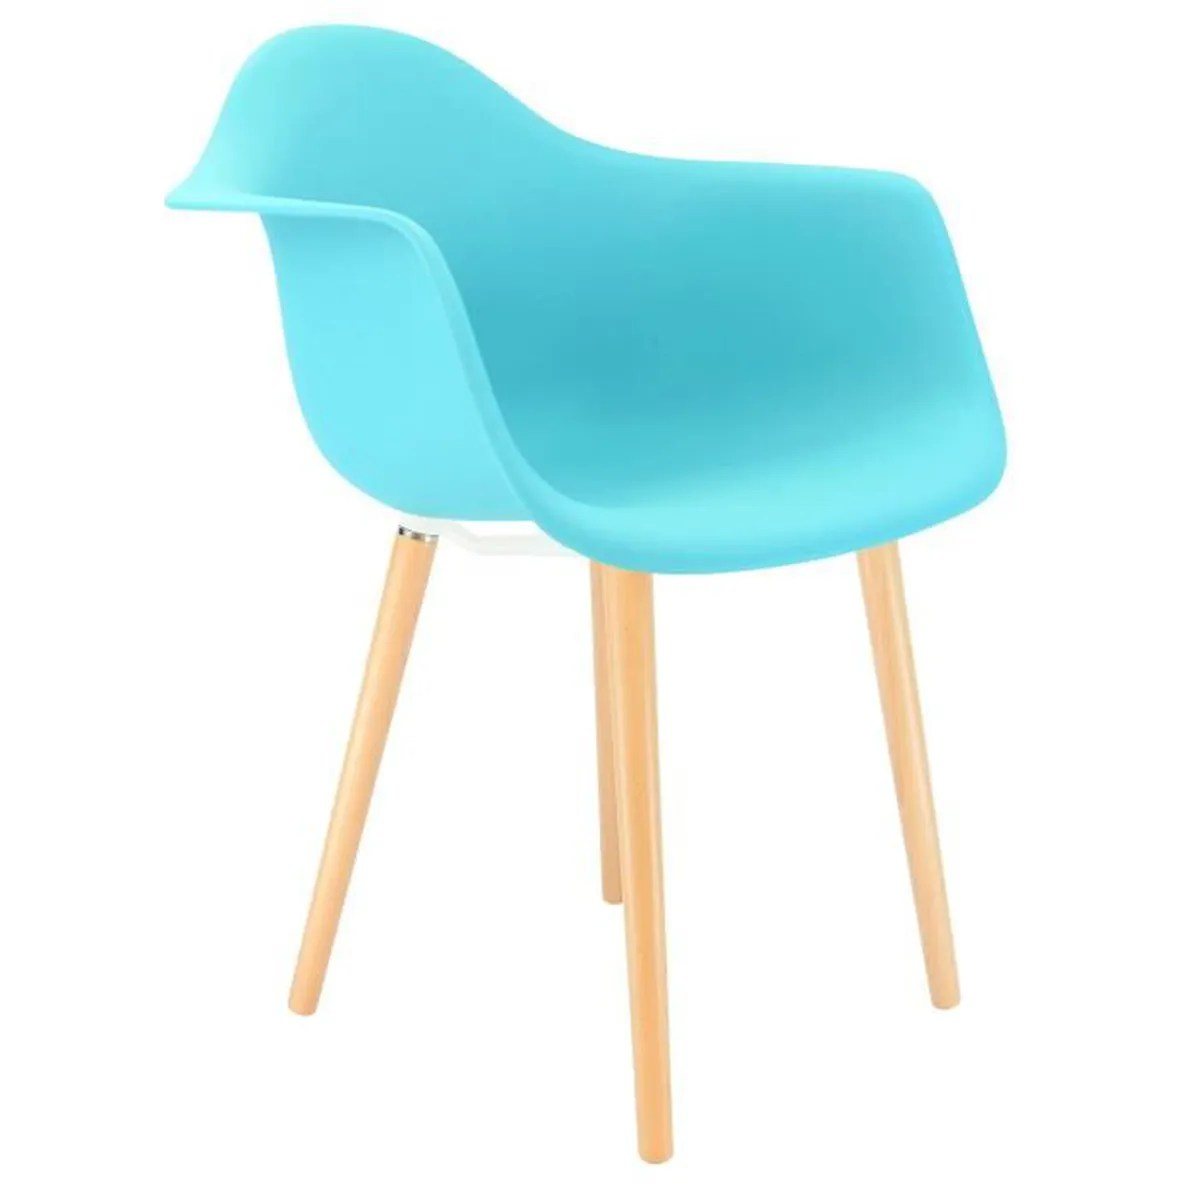 Chaises Privee Vente Privee Chaise Cool Vente Prive Chaises Hautes Bb